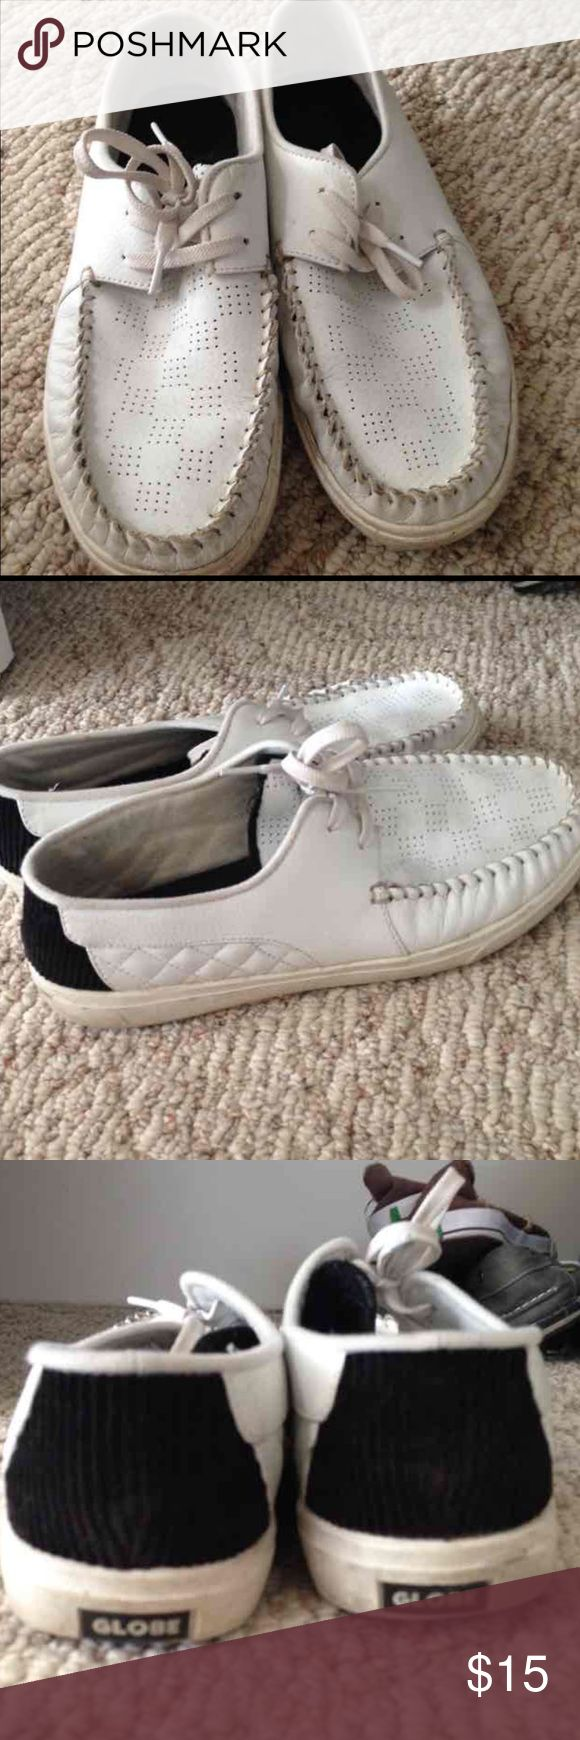 Men's globe boat style shoes Men's white boat shoes by Globe. These shoes are in fair condition worn but still have some wear in them. Globe Shoes Boat Shoes